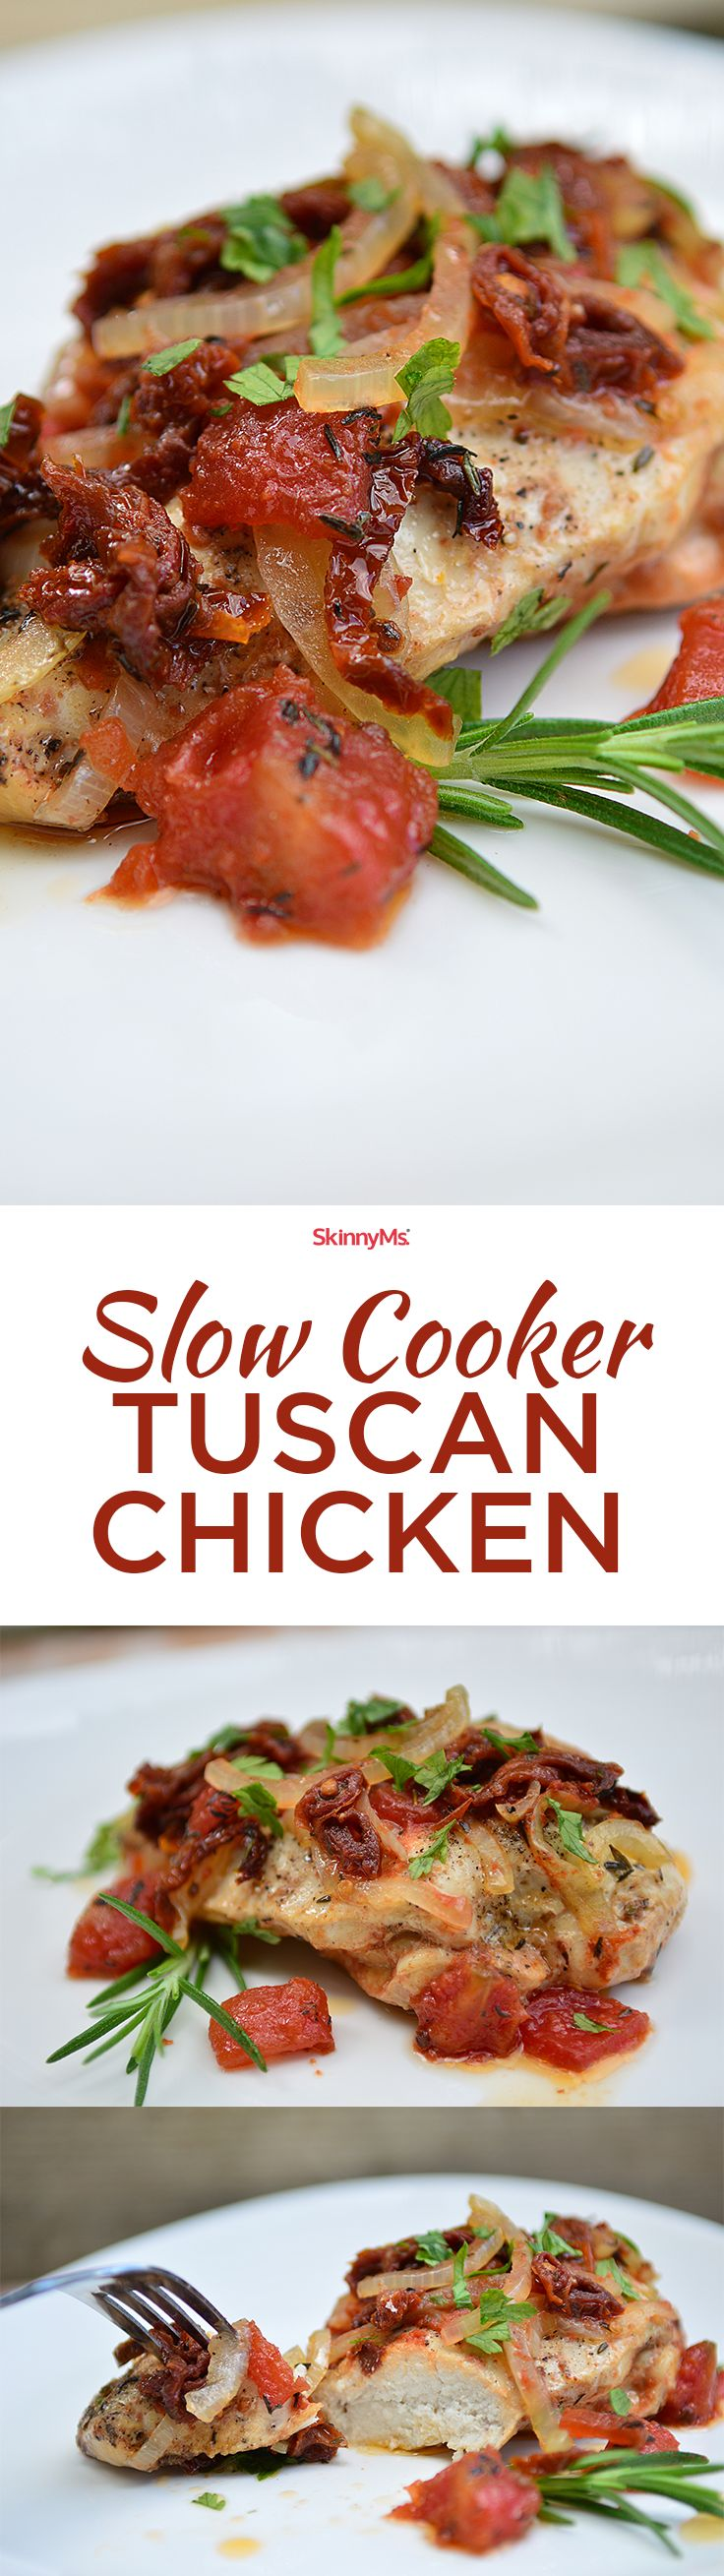 Our Slow Cooker Tuscan Chicken is a delicious feel-good recipe that's like taking a trip to Italy-but without leaving the house!